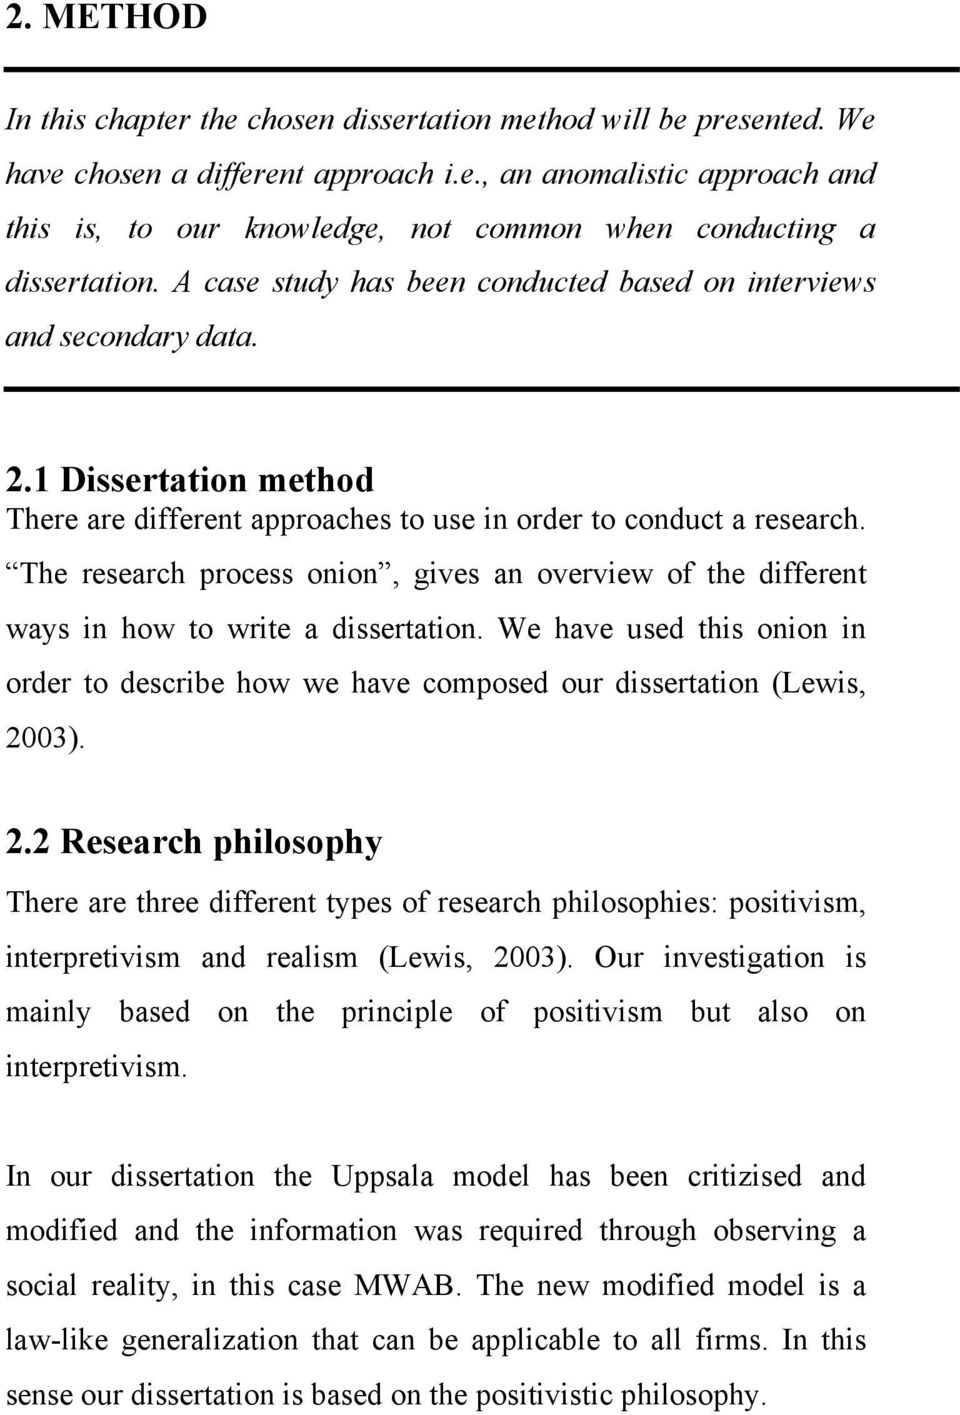 The research process onion, gives an overview of the different ways in how to write a dissertation. We have used this onion in order to describe how we have composed our dissertation (Lewis, 20